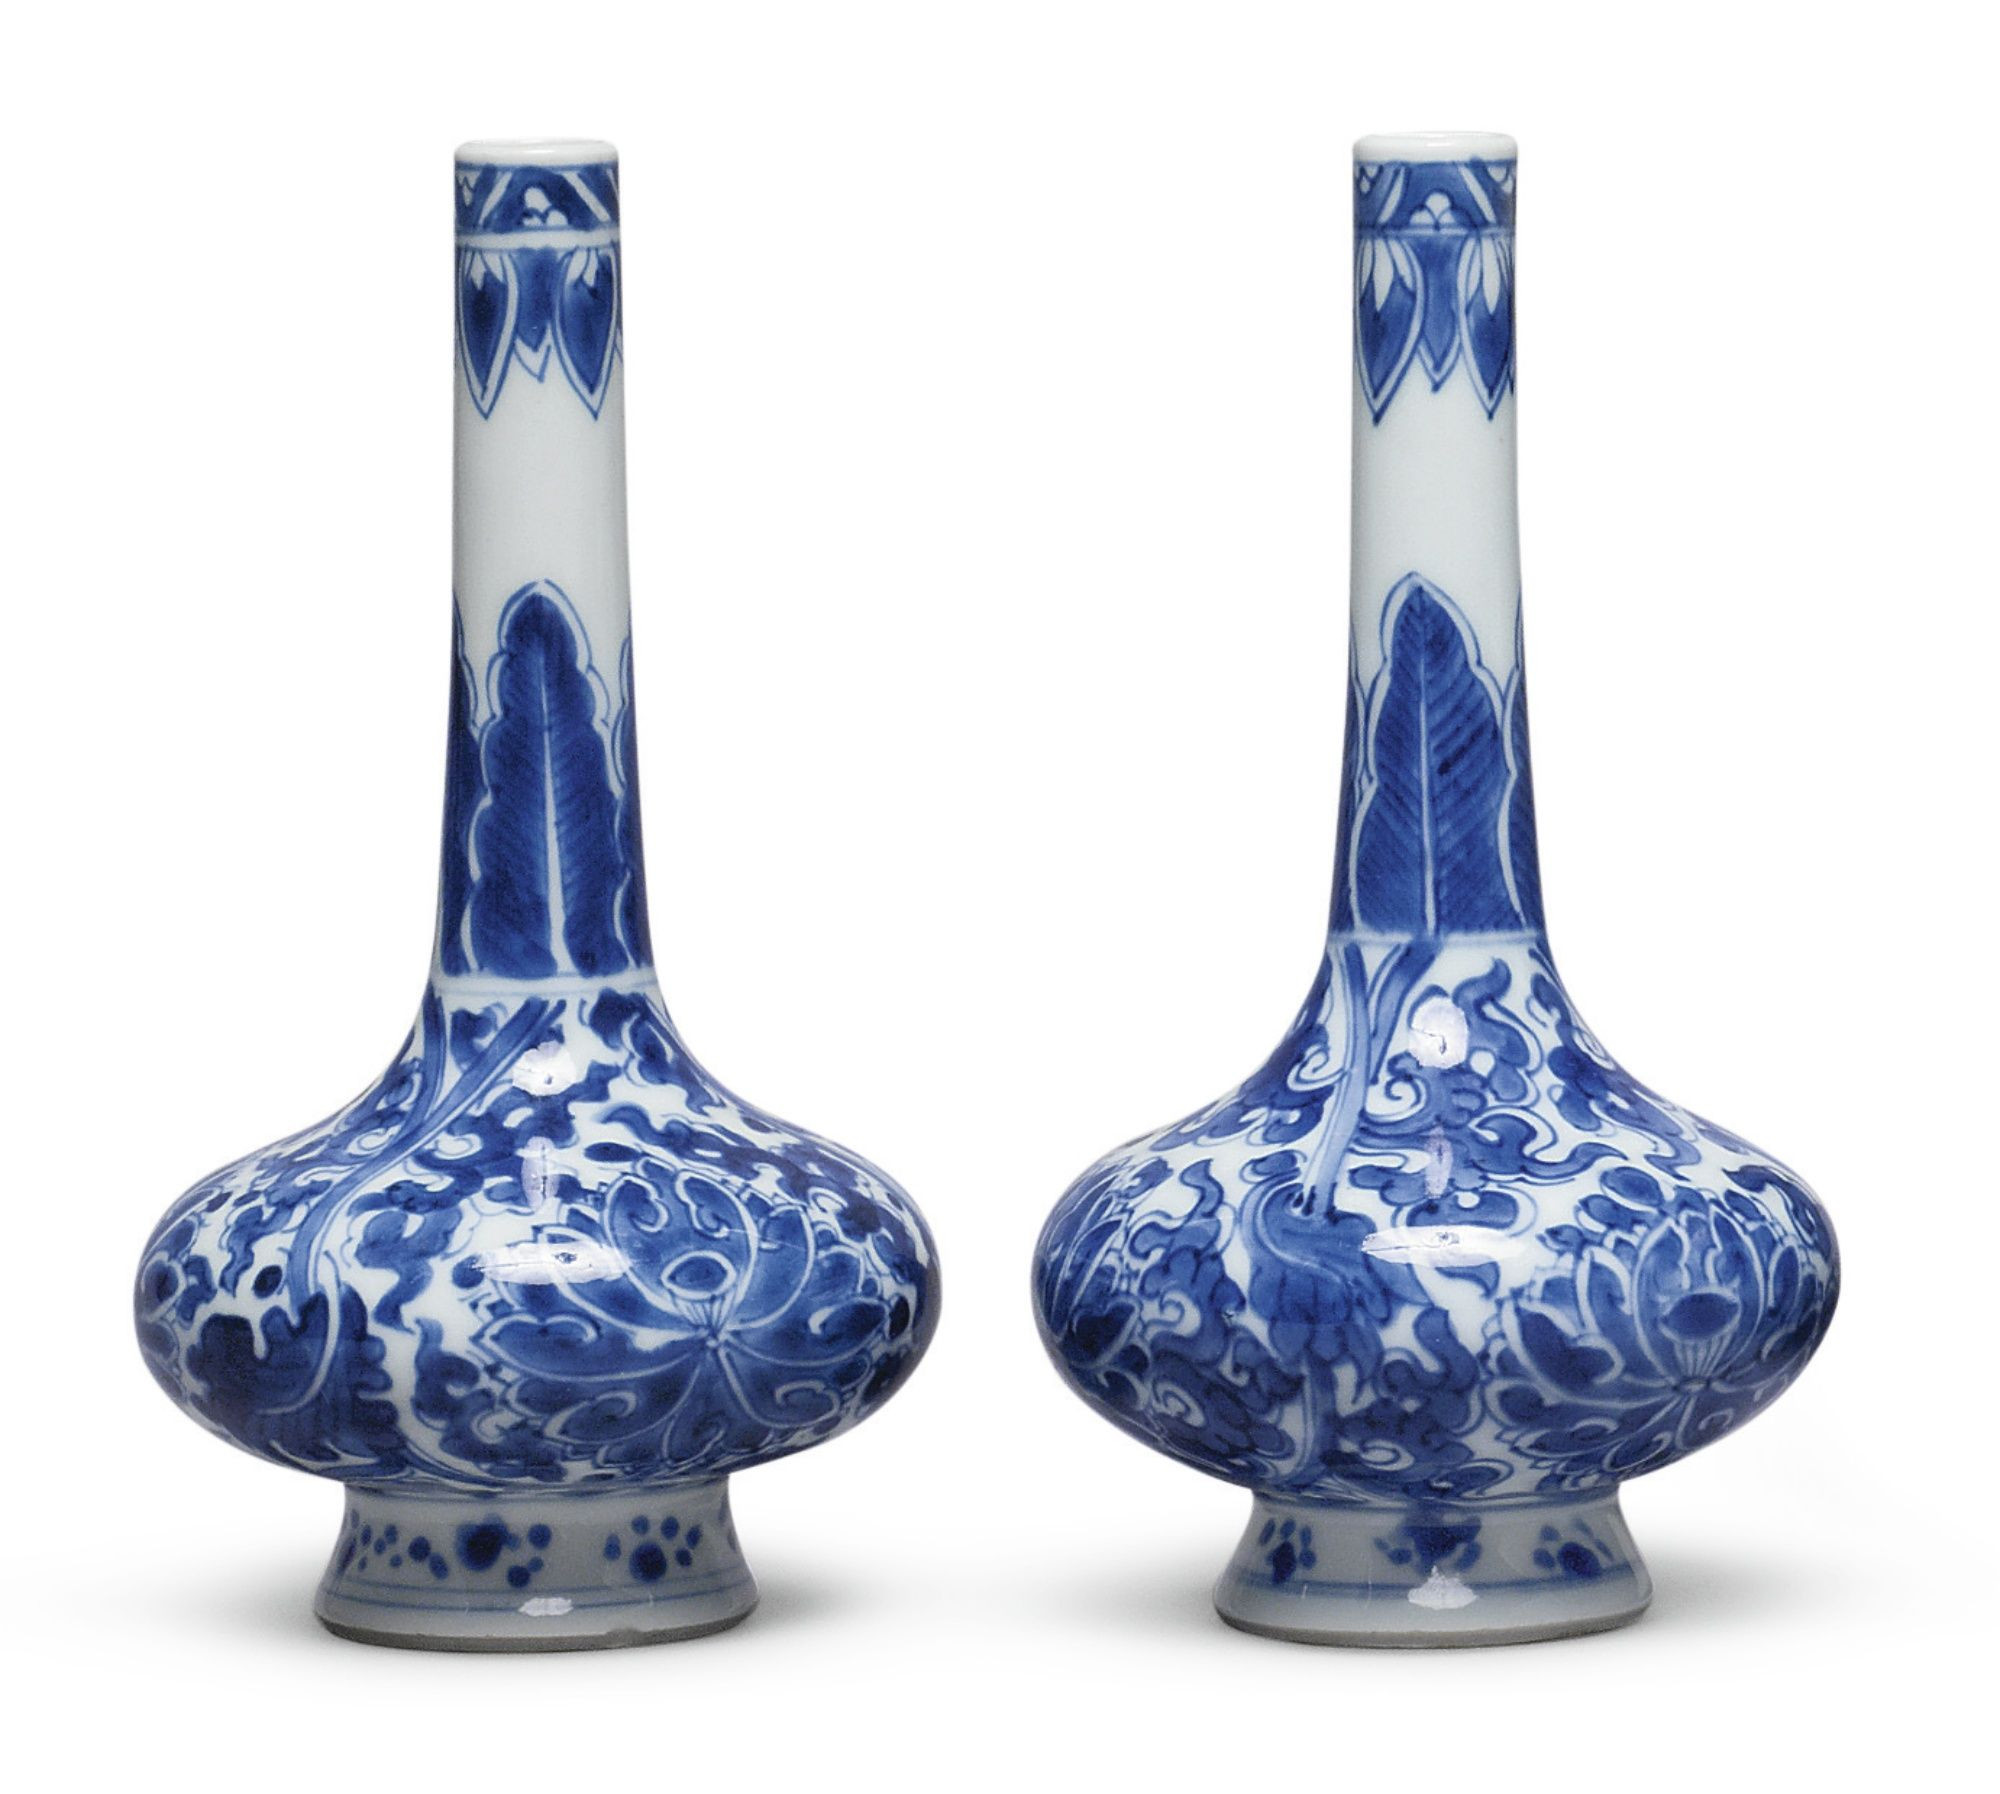 27 Recommended Chinese Meiping Vase 2021 free download chinese meiping vase of image result for antique chinese vase hurricanevasesdecor with regard to two blue and white lotus bottle vases qing dynasty kangxi period